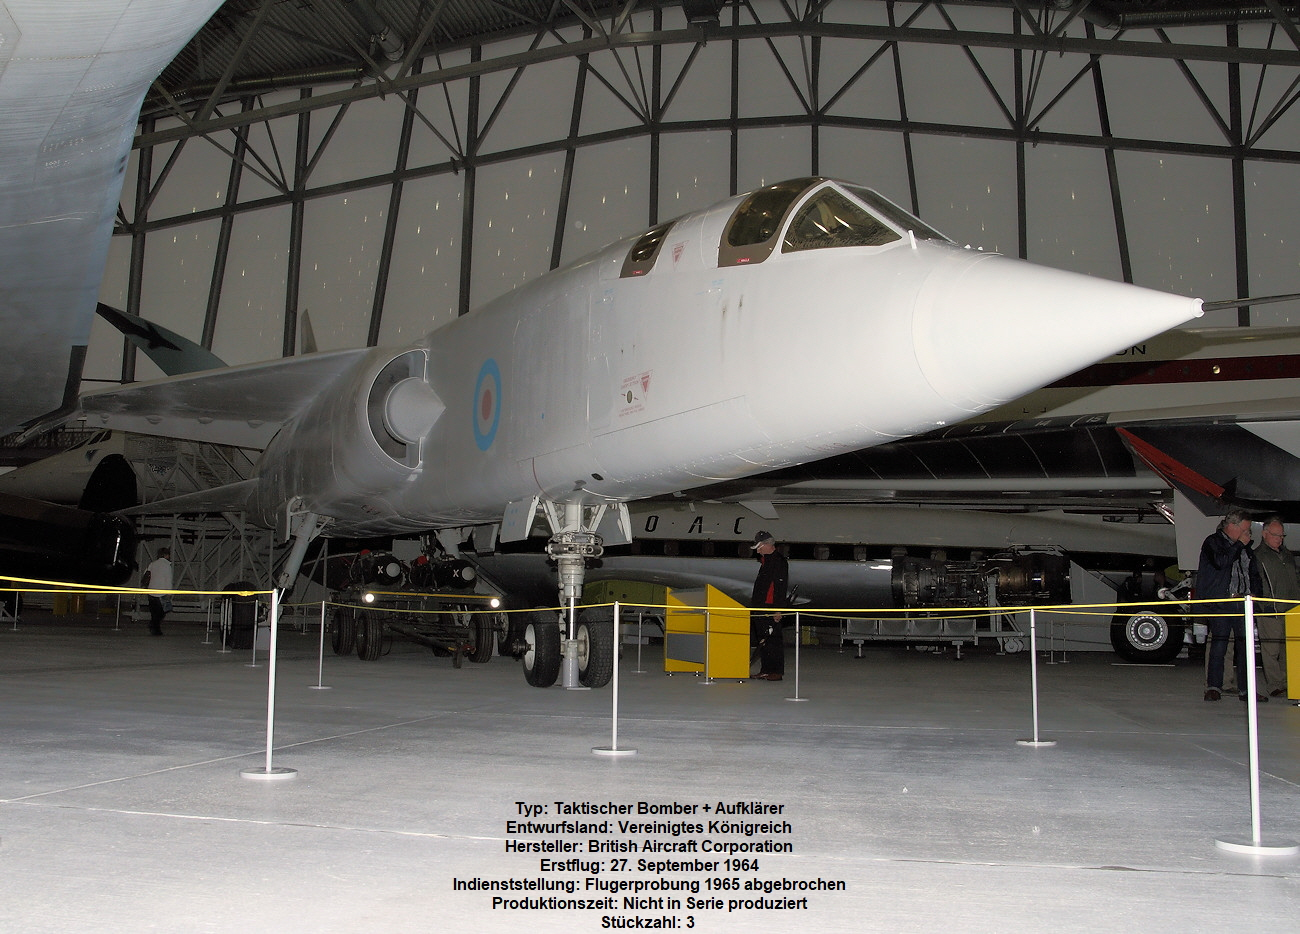 BAC TSR.2 - Tactical Strike and Reconnaissance 2